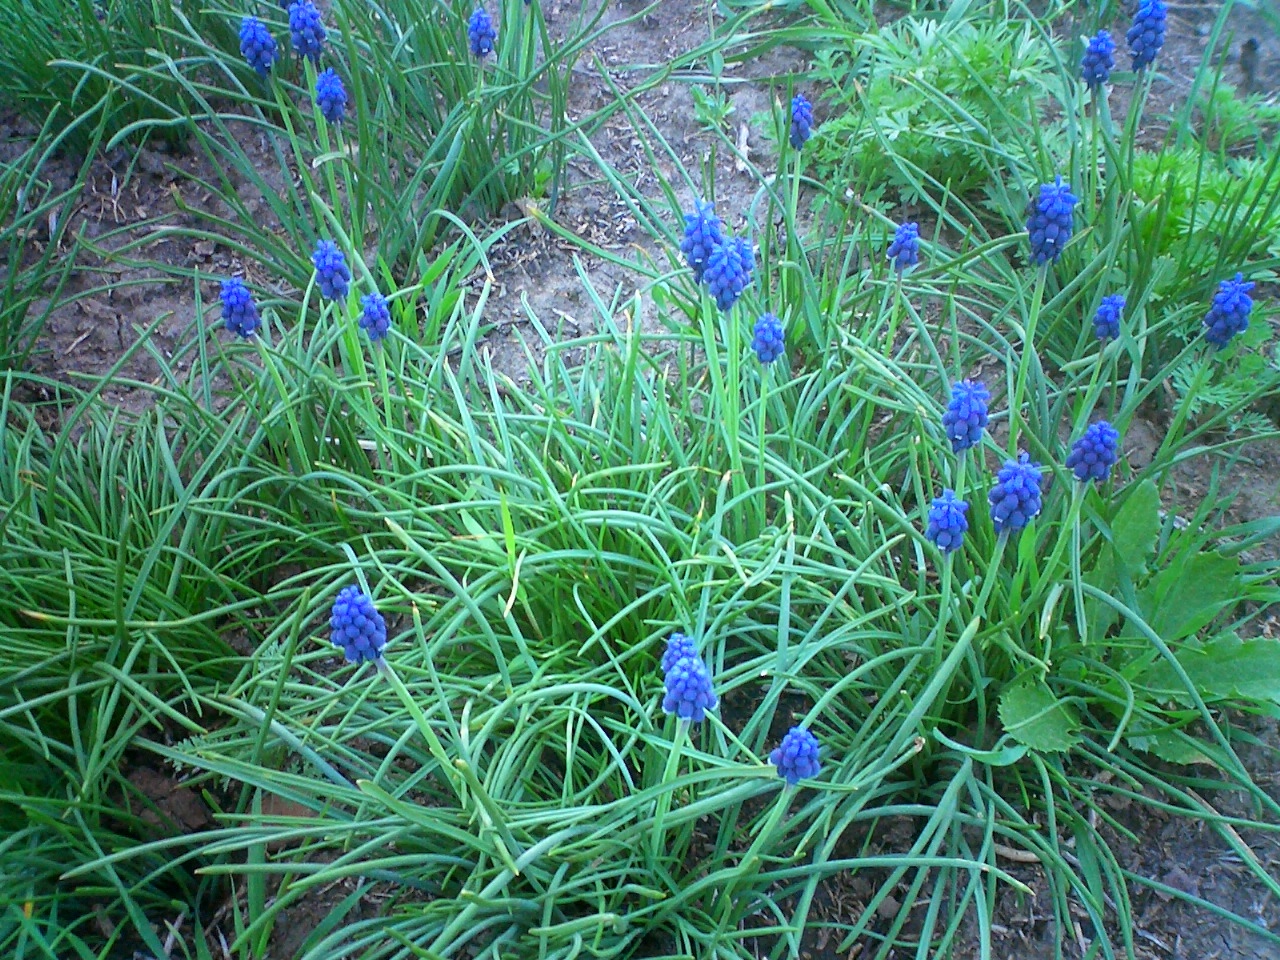 File:Muscari armeniacum.jpg